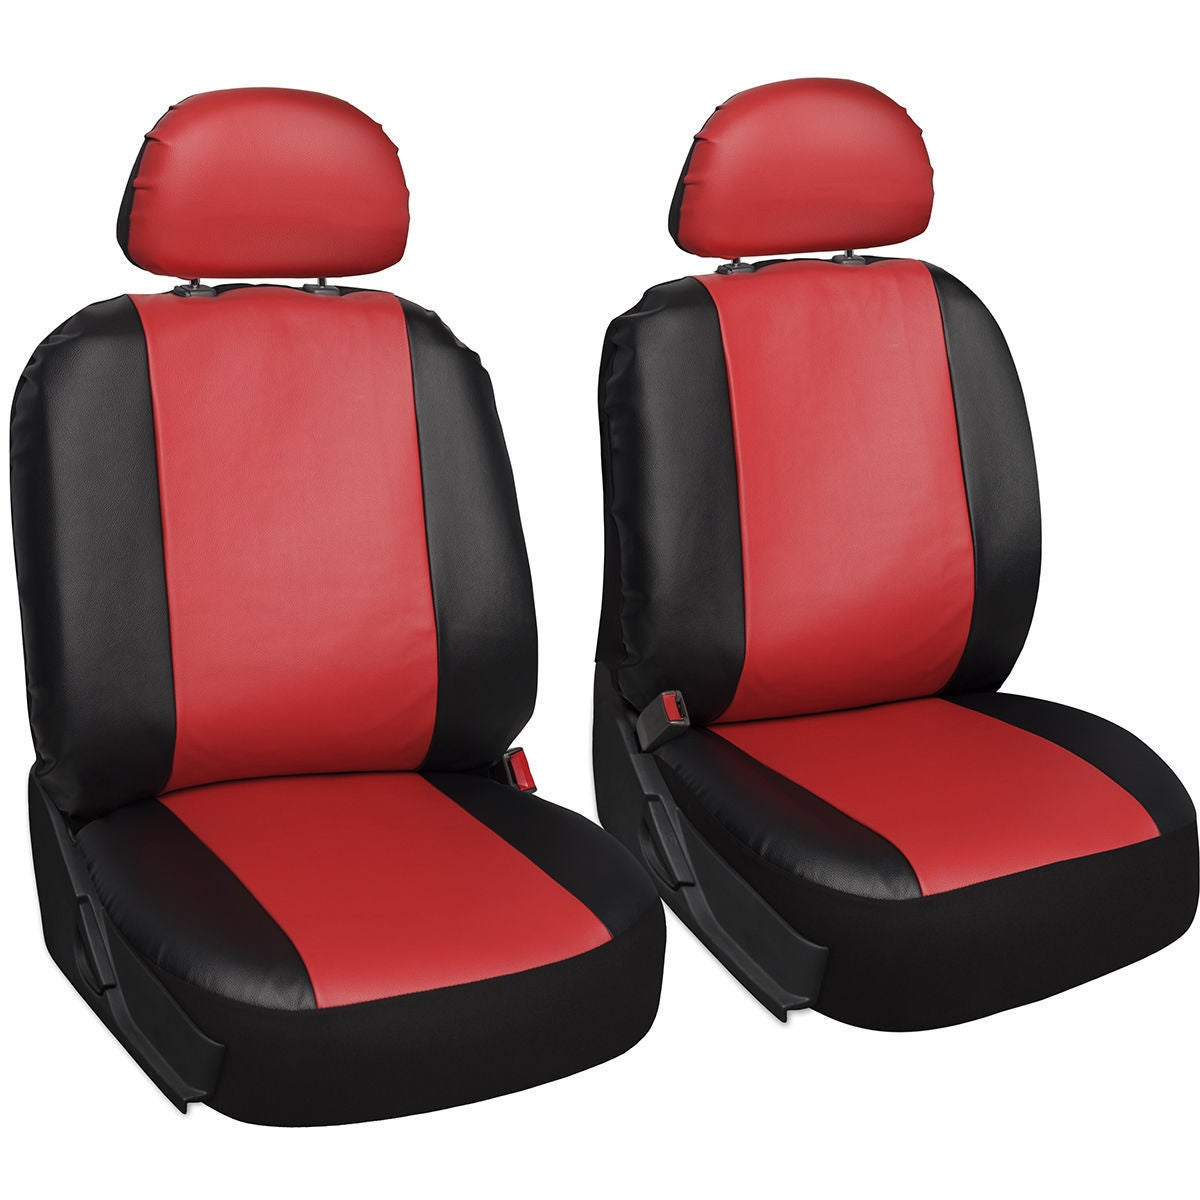 Red And Black Pu Leather Four Season Universal 5 Headrest 18 Piece Car Seat Cover Set Overstock 14781391